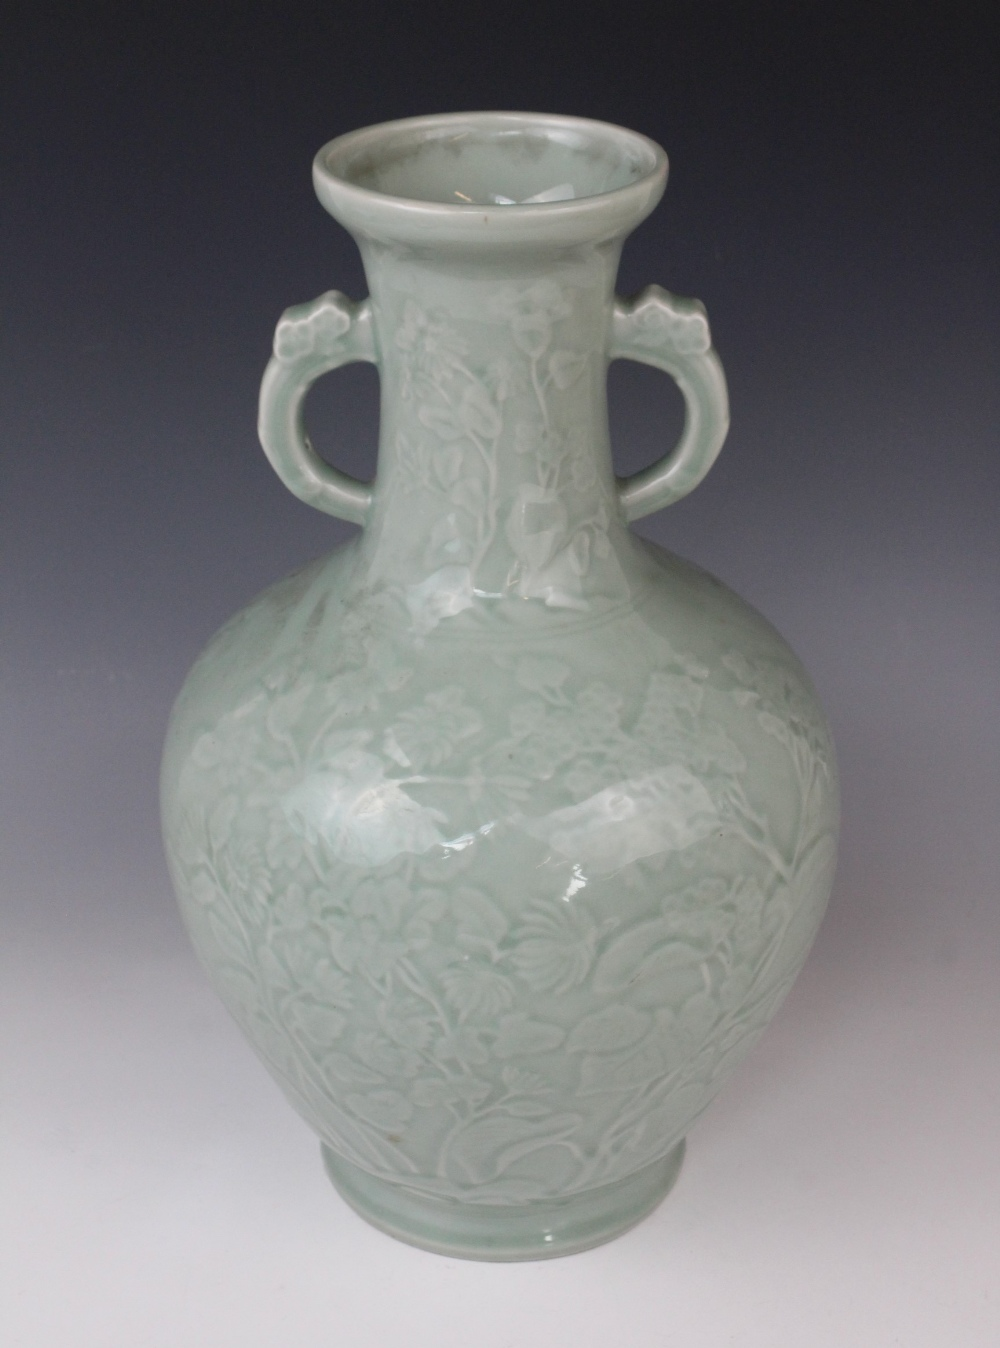 A Chinese Longquan celadon glazed vase, 20th century, the arrow-head type shaped twin handled vase - Image 2 of 3